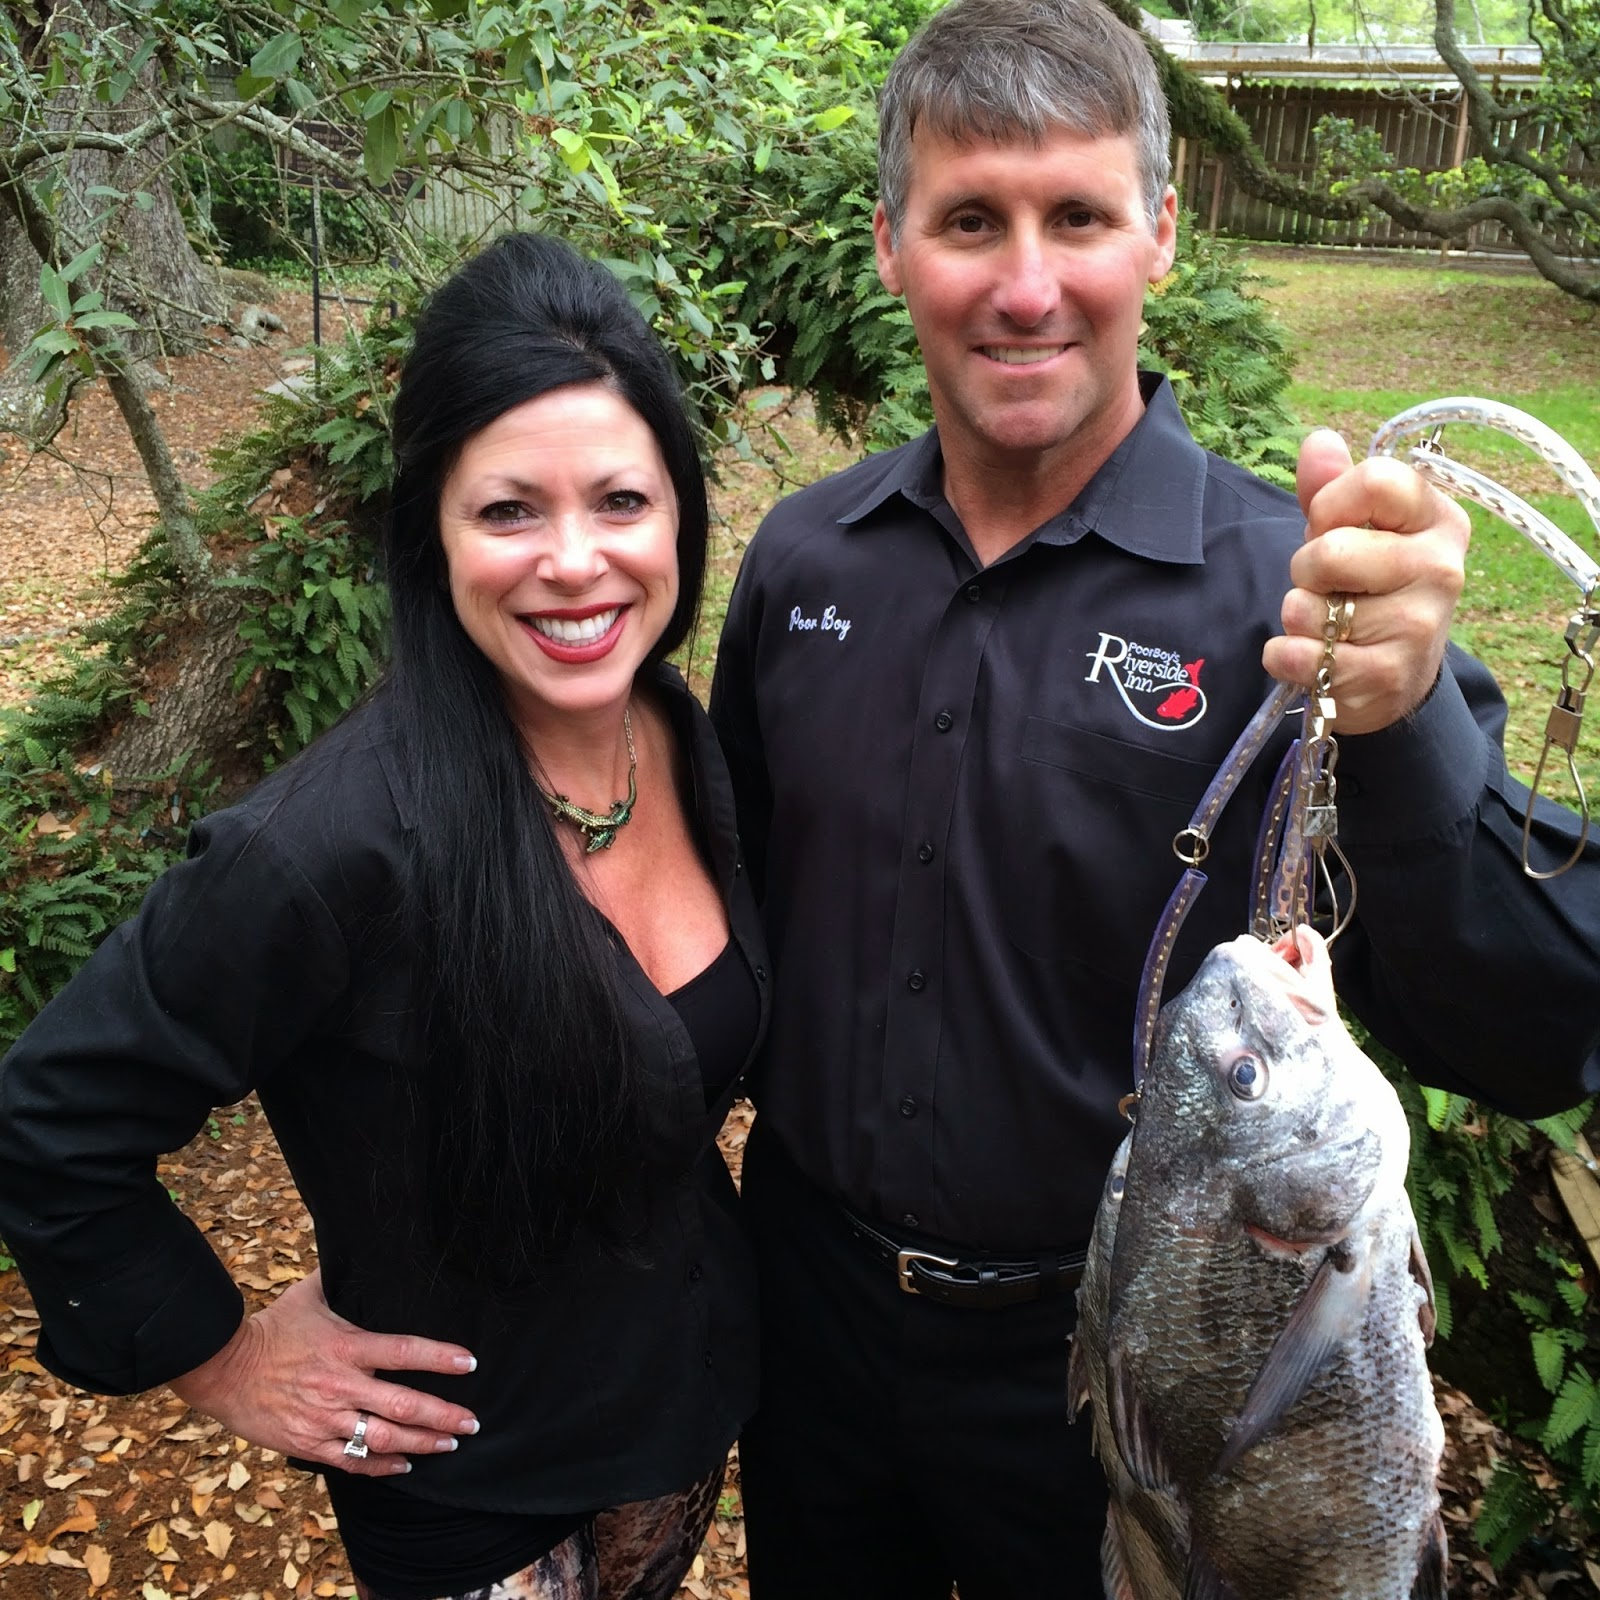 Chef Richard Hurst and his wife Lori flaunt their fresh catch morning delivery